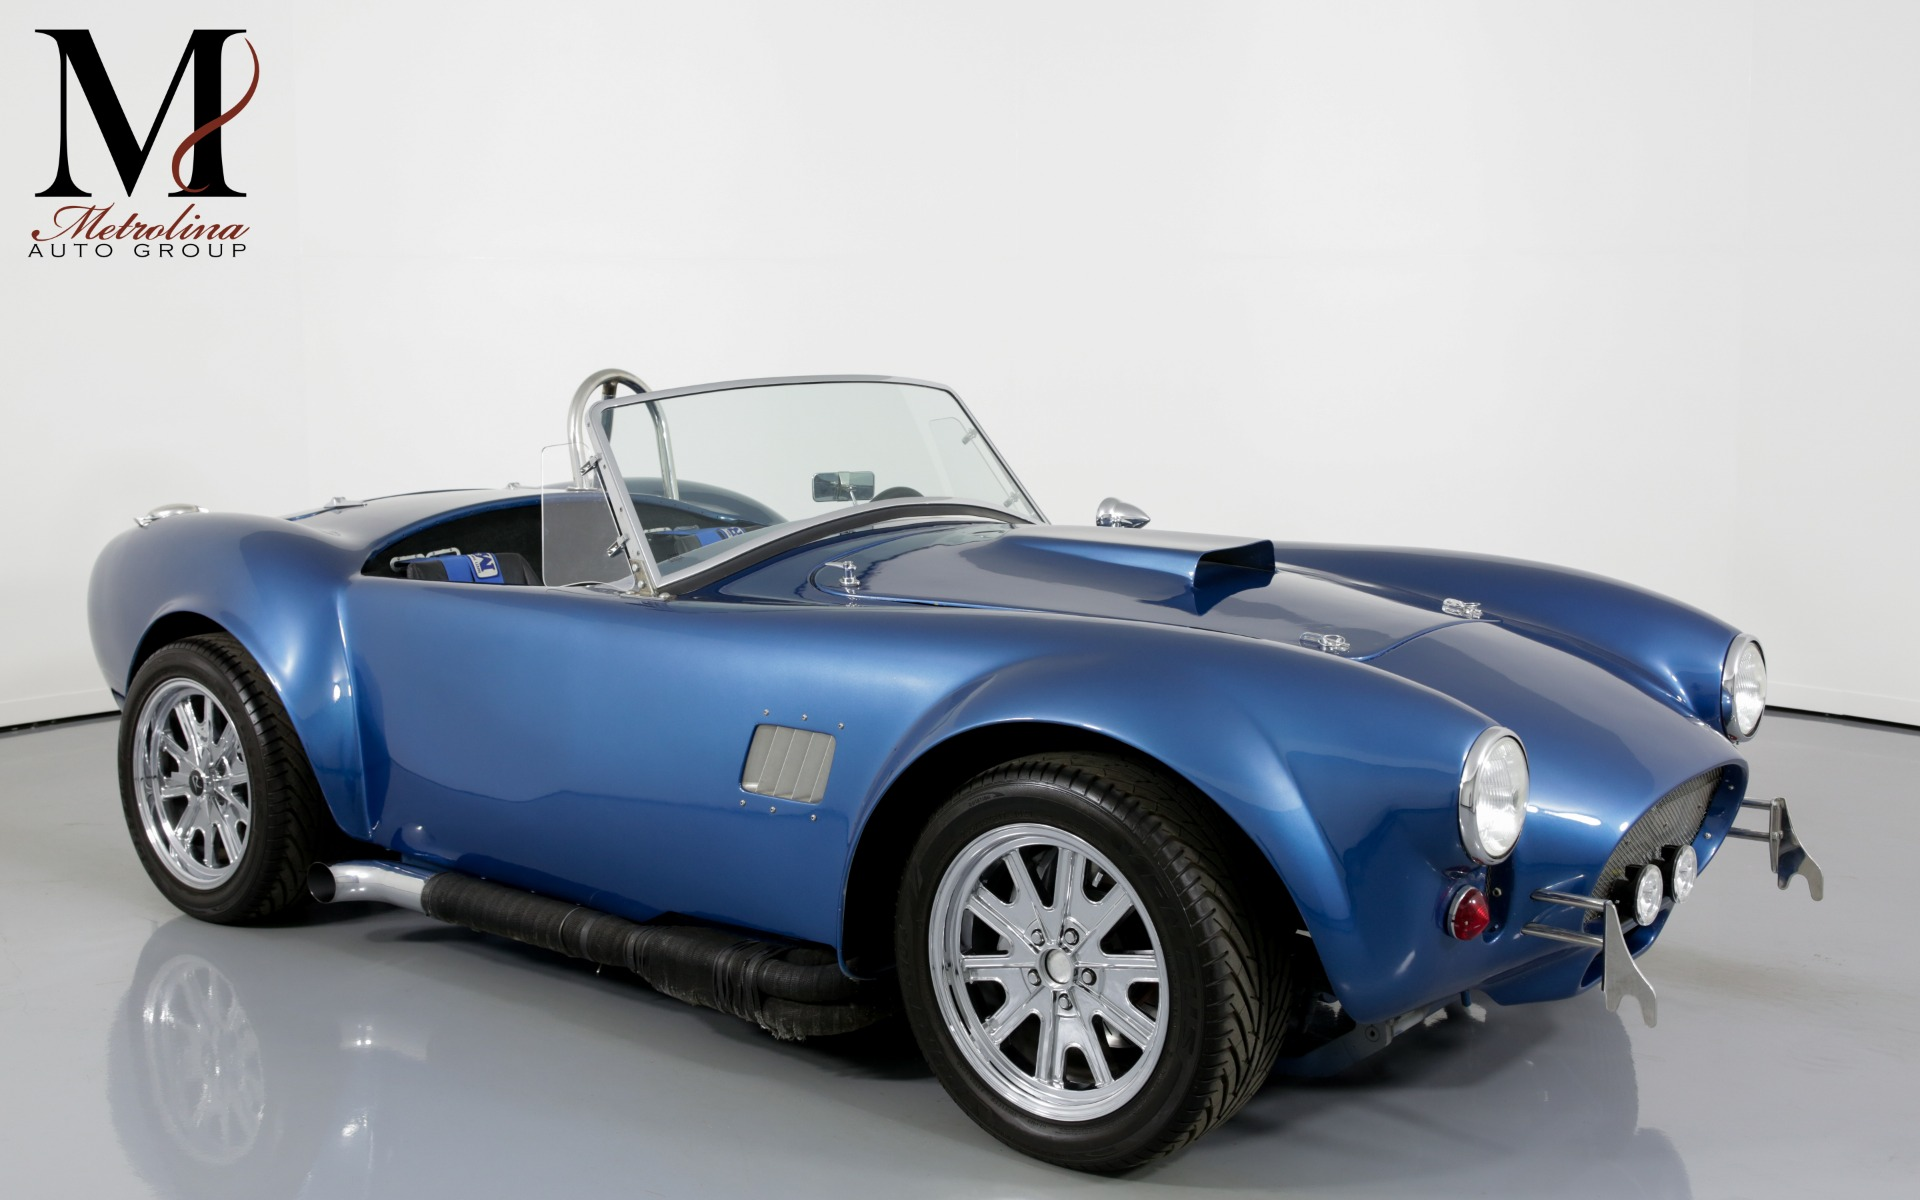 Used 1965 Shelby Cobra KIT CAR for sale $29,996 at Metrolina Auto Group in Charlotte NC 28217 - 1